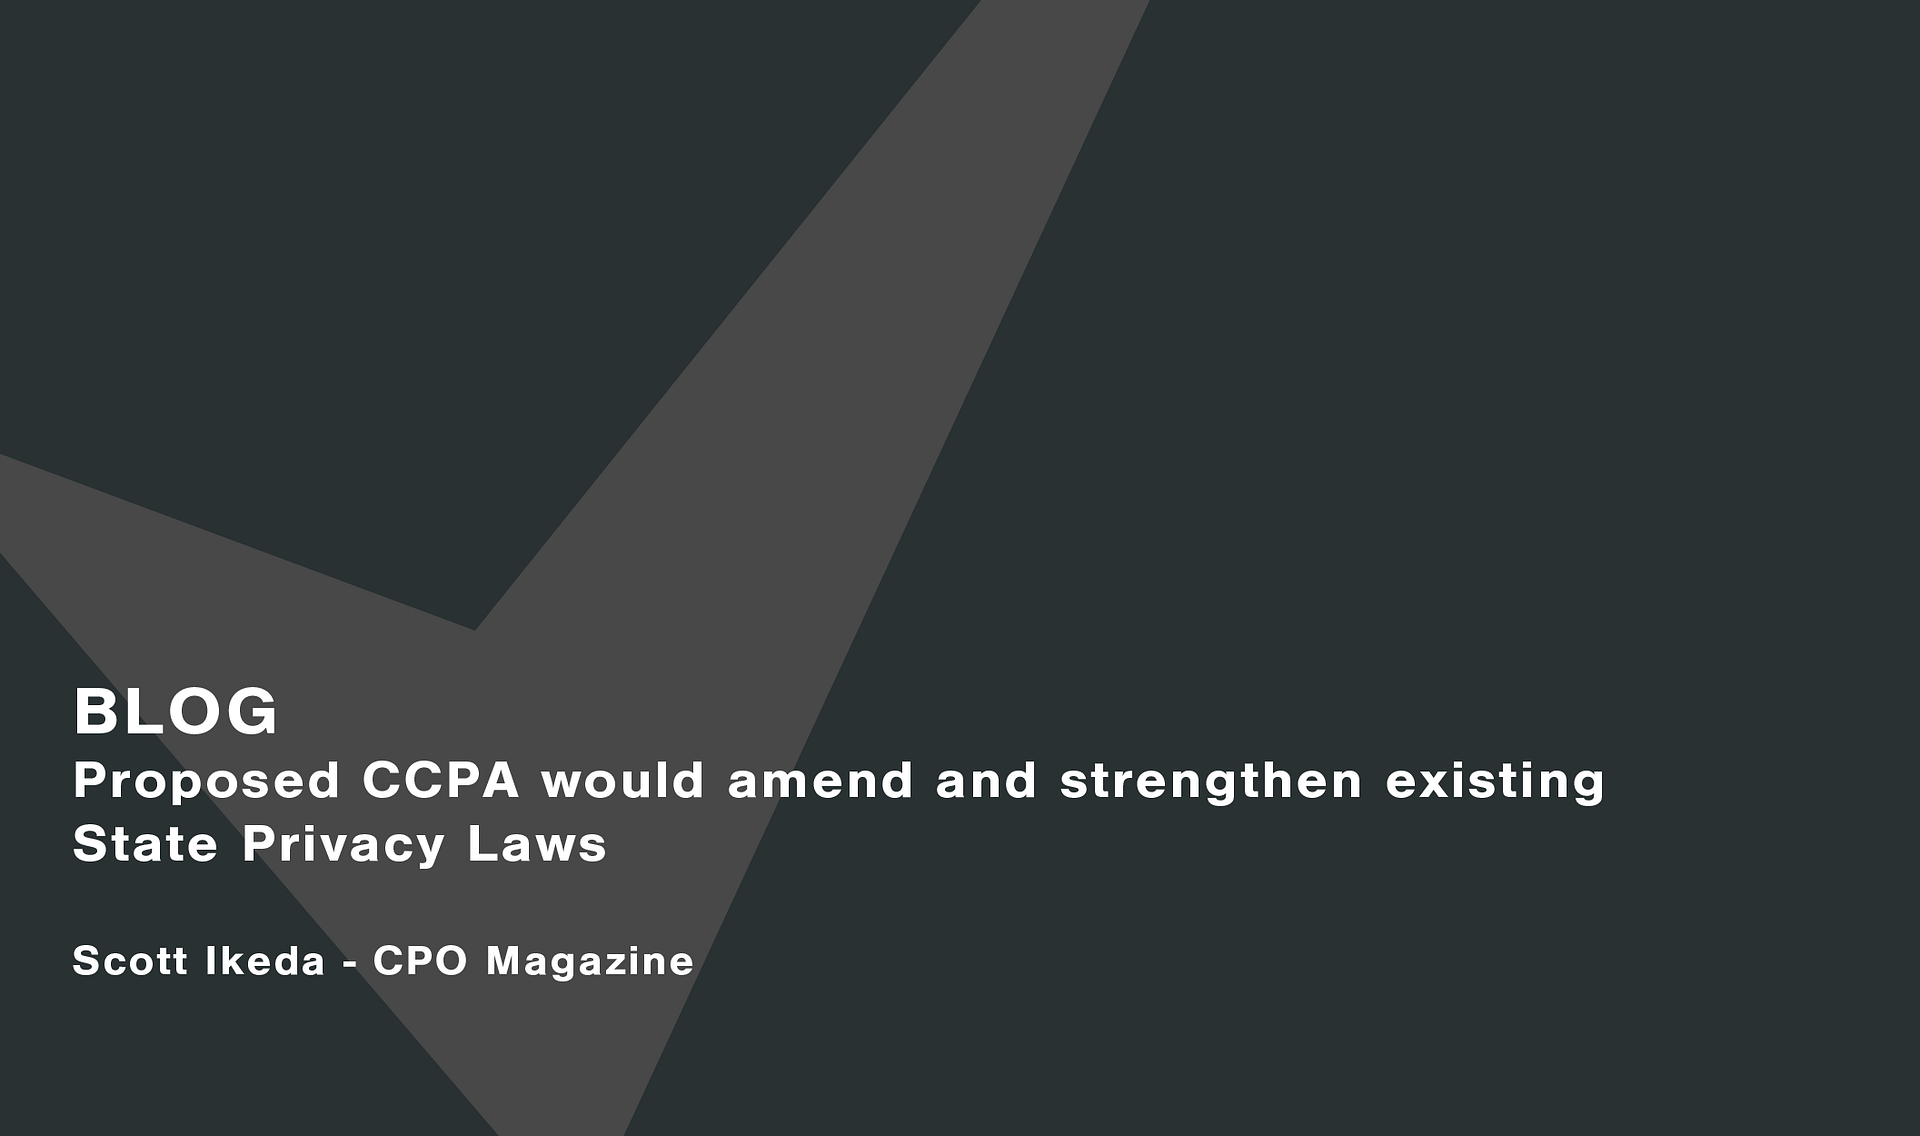 Proposed CCPA would amend and strengthen existing State Privacy Laws Cassie personal information & consent management